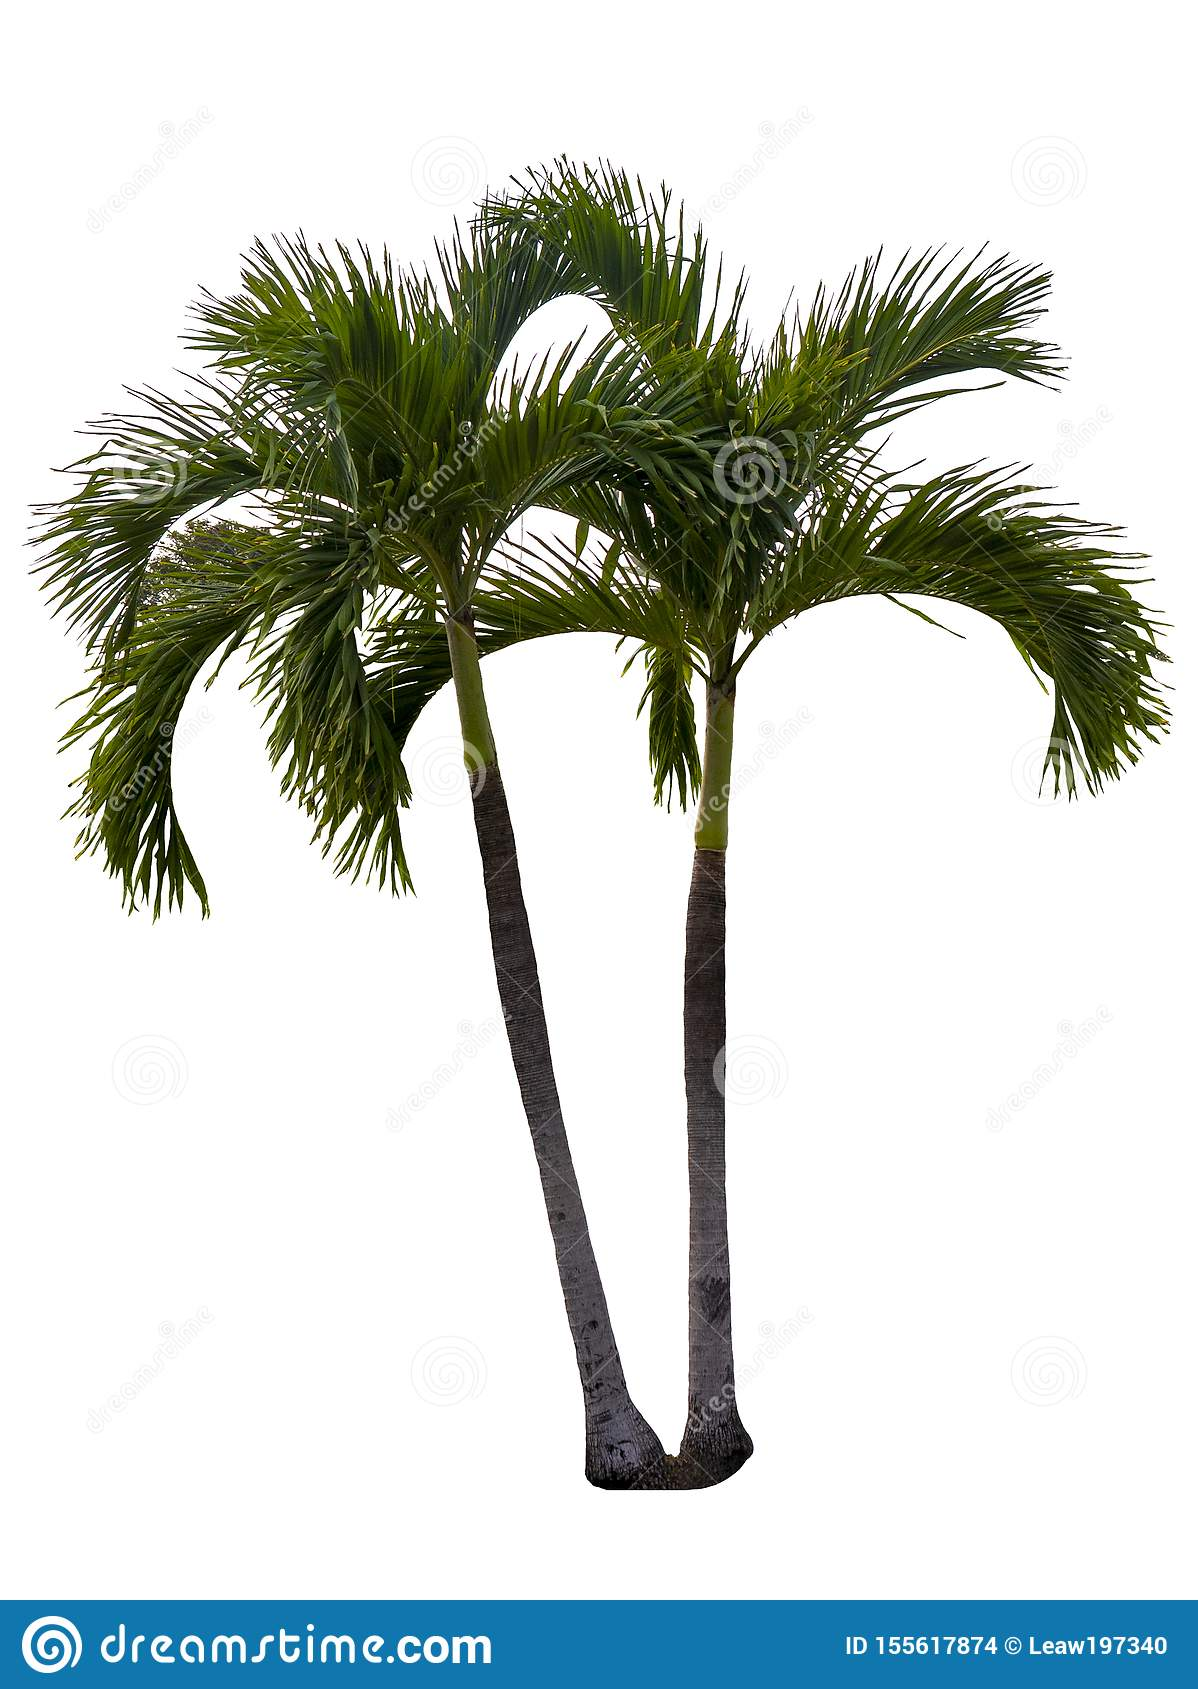 Washington Palm Tree a isol? sur le fond blanc avec une haute r?solution appropri?e au graphique